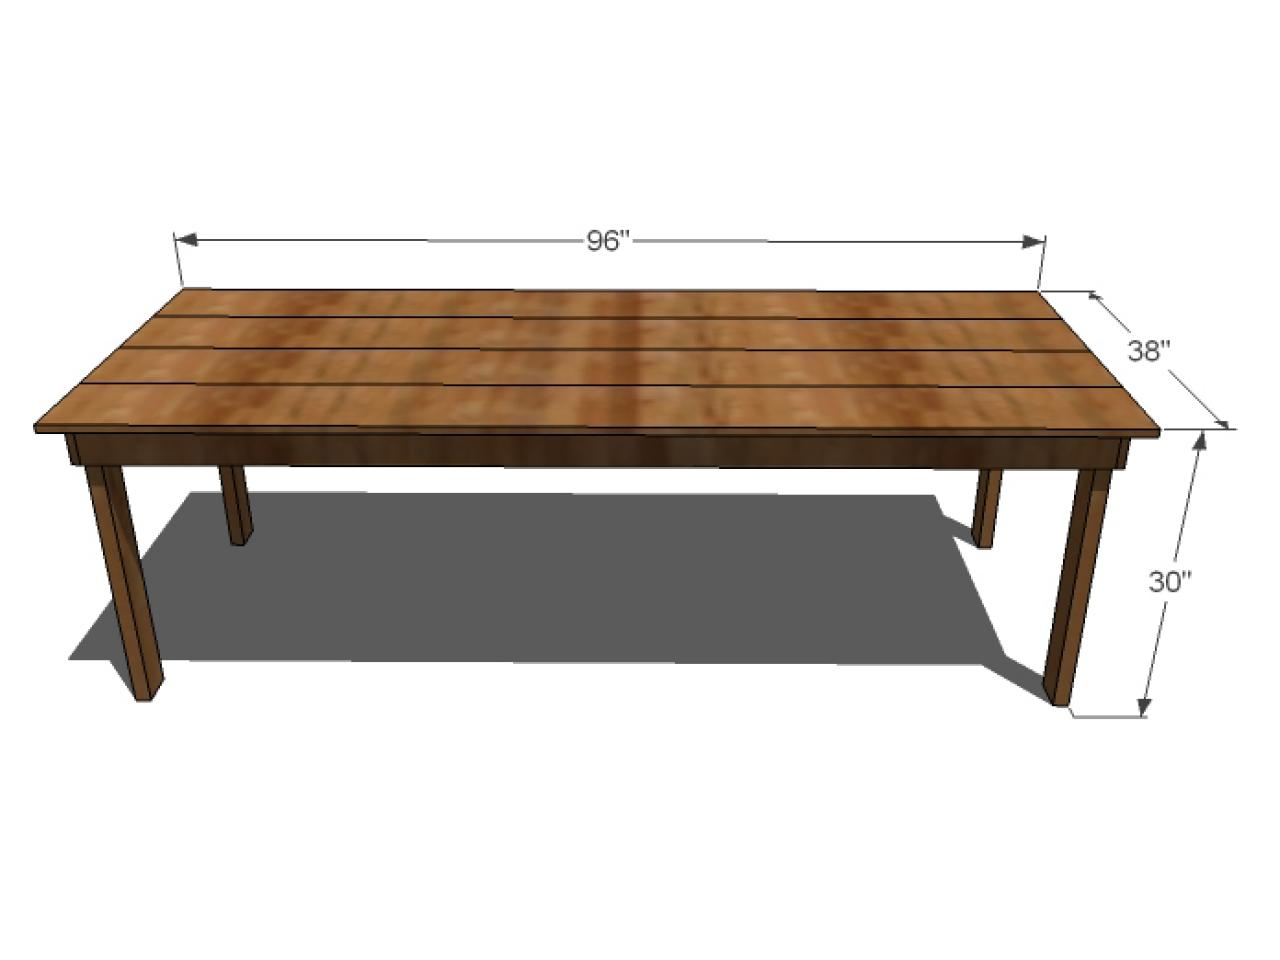 cut list - Diy Dining Room Table Plans